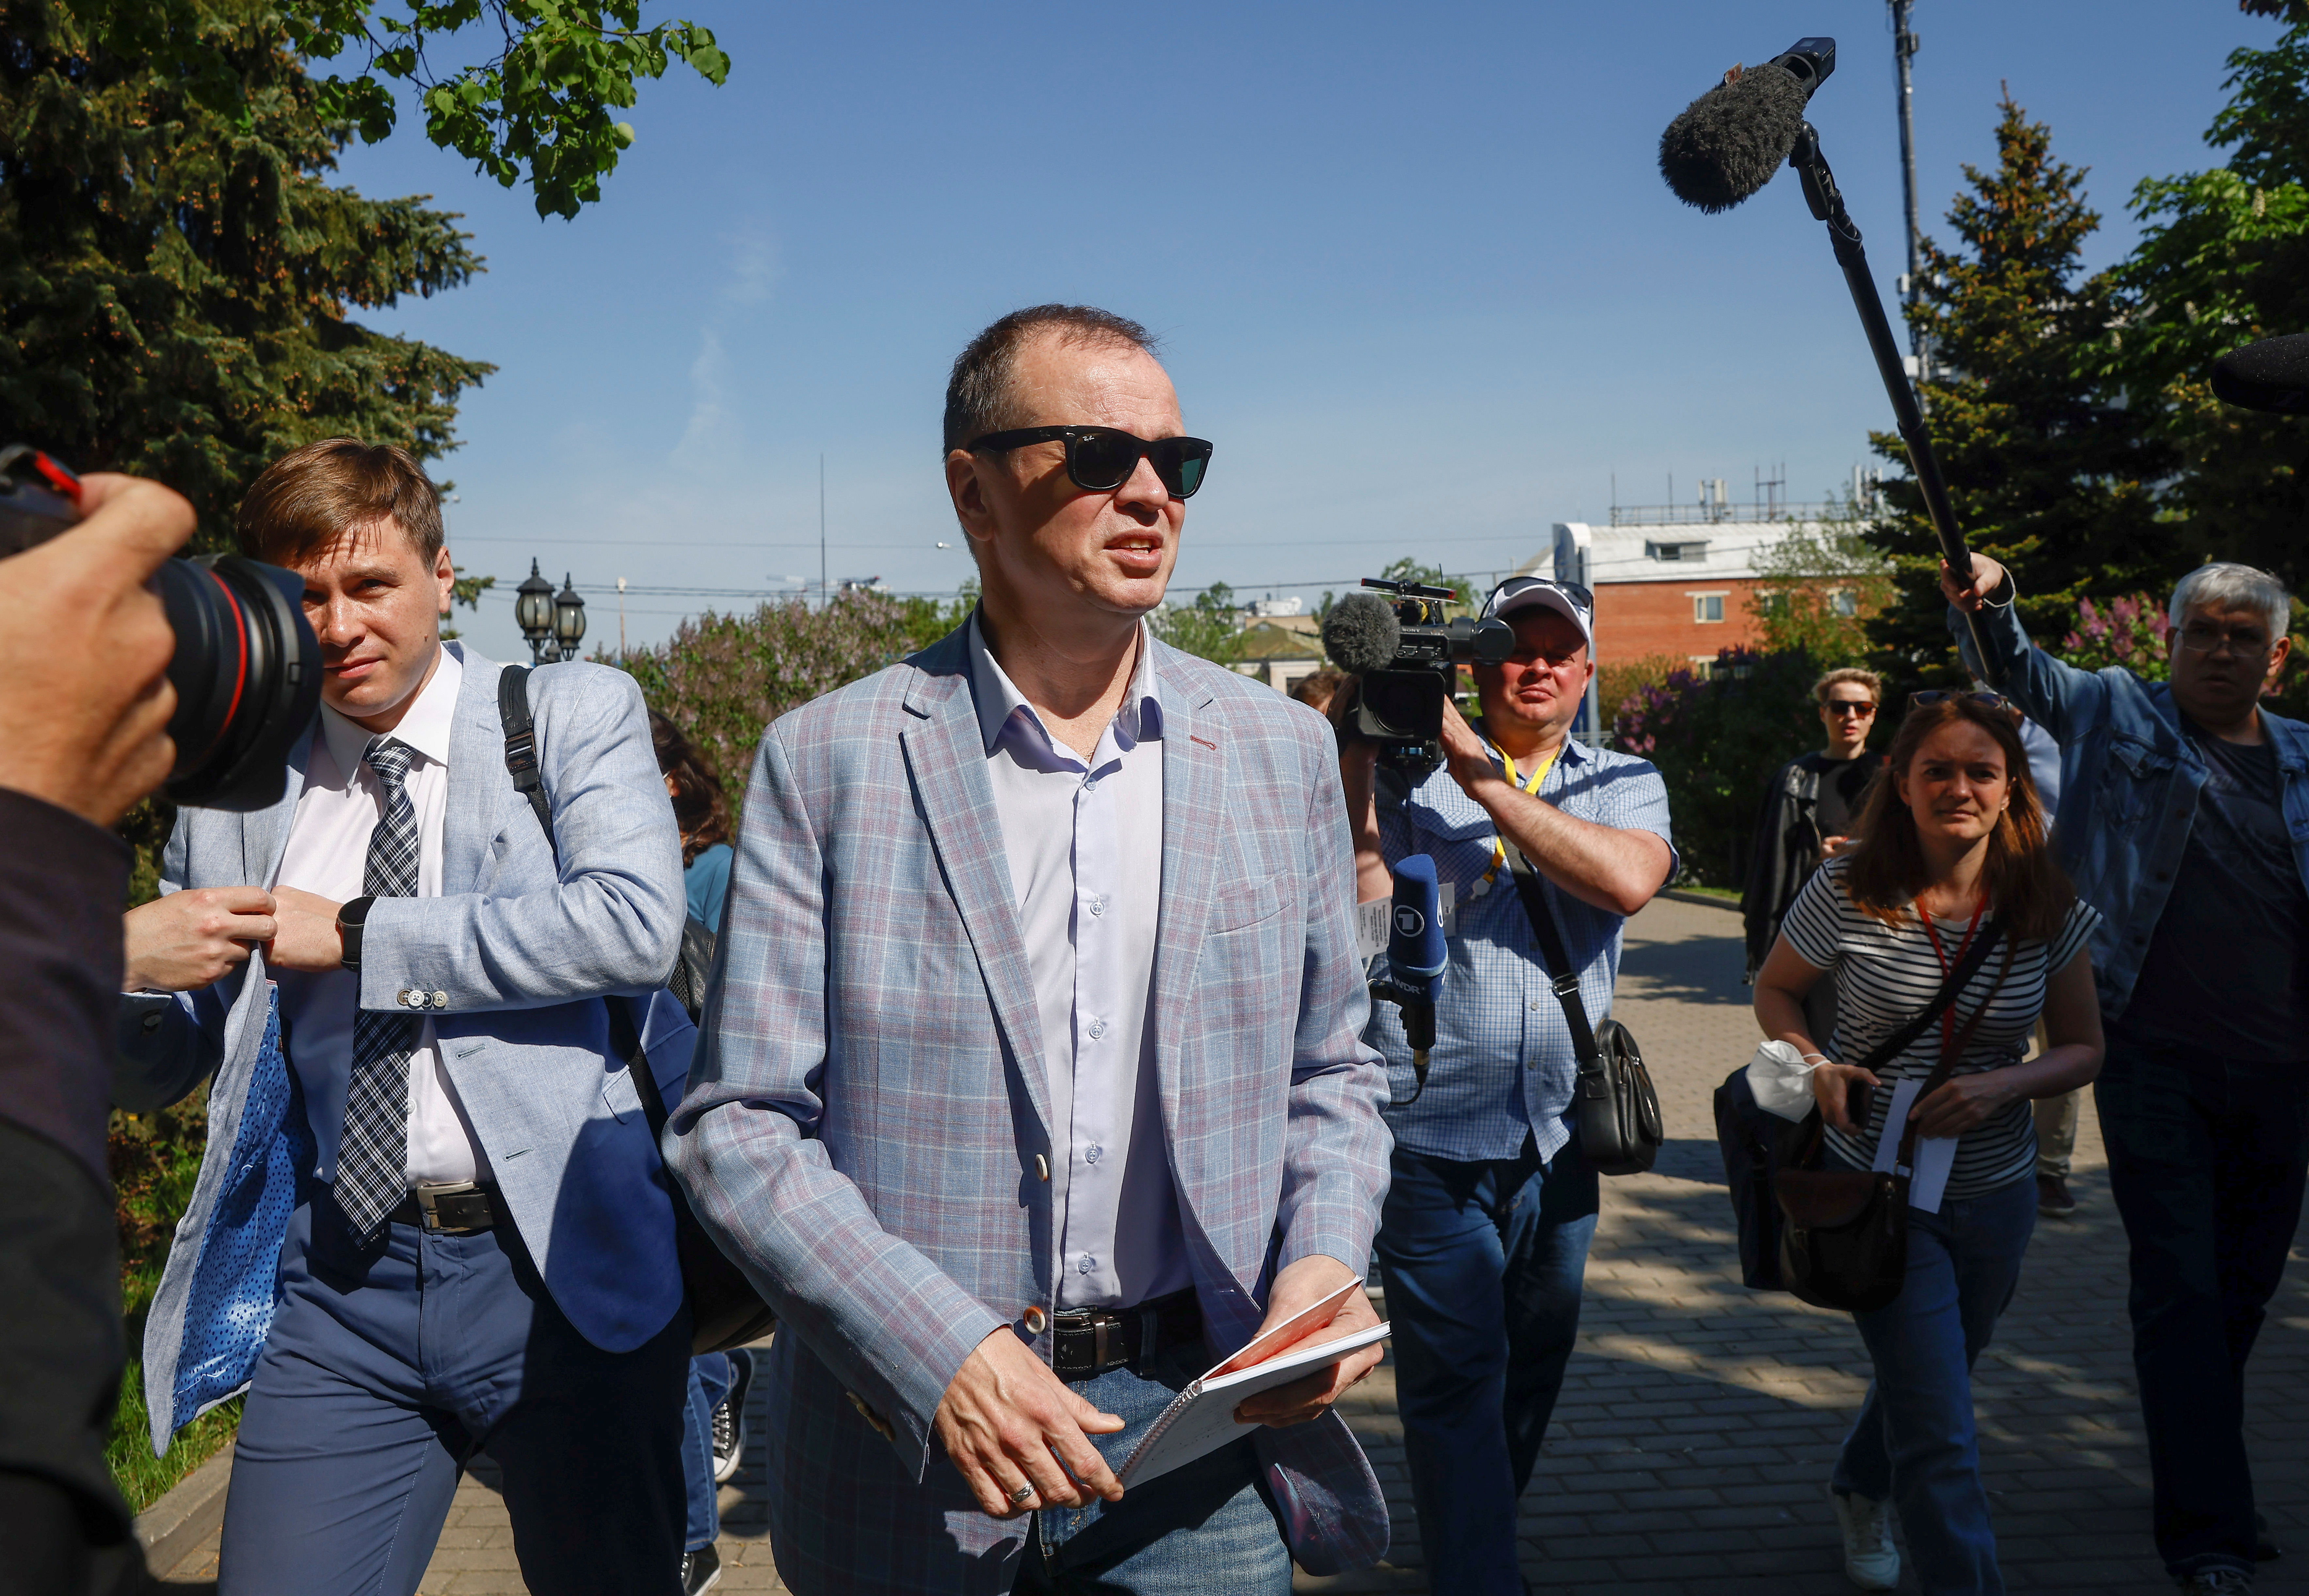 Ivan Pavlov, a lawyer defending Kremlin critic Alexei Navalny's Anti-Corruption Foundation (FBK) in an extremism case, speaks with journalists upon his arrival at a court building in Moscow, Russia May 17, 2021. REUTERS/Maxim Shemetov